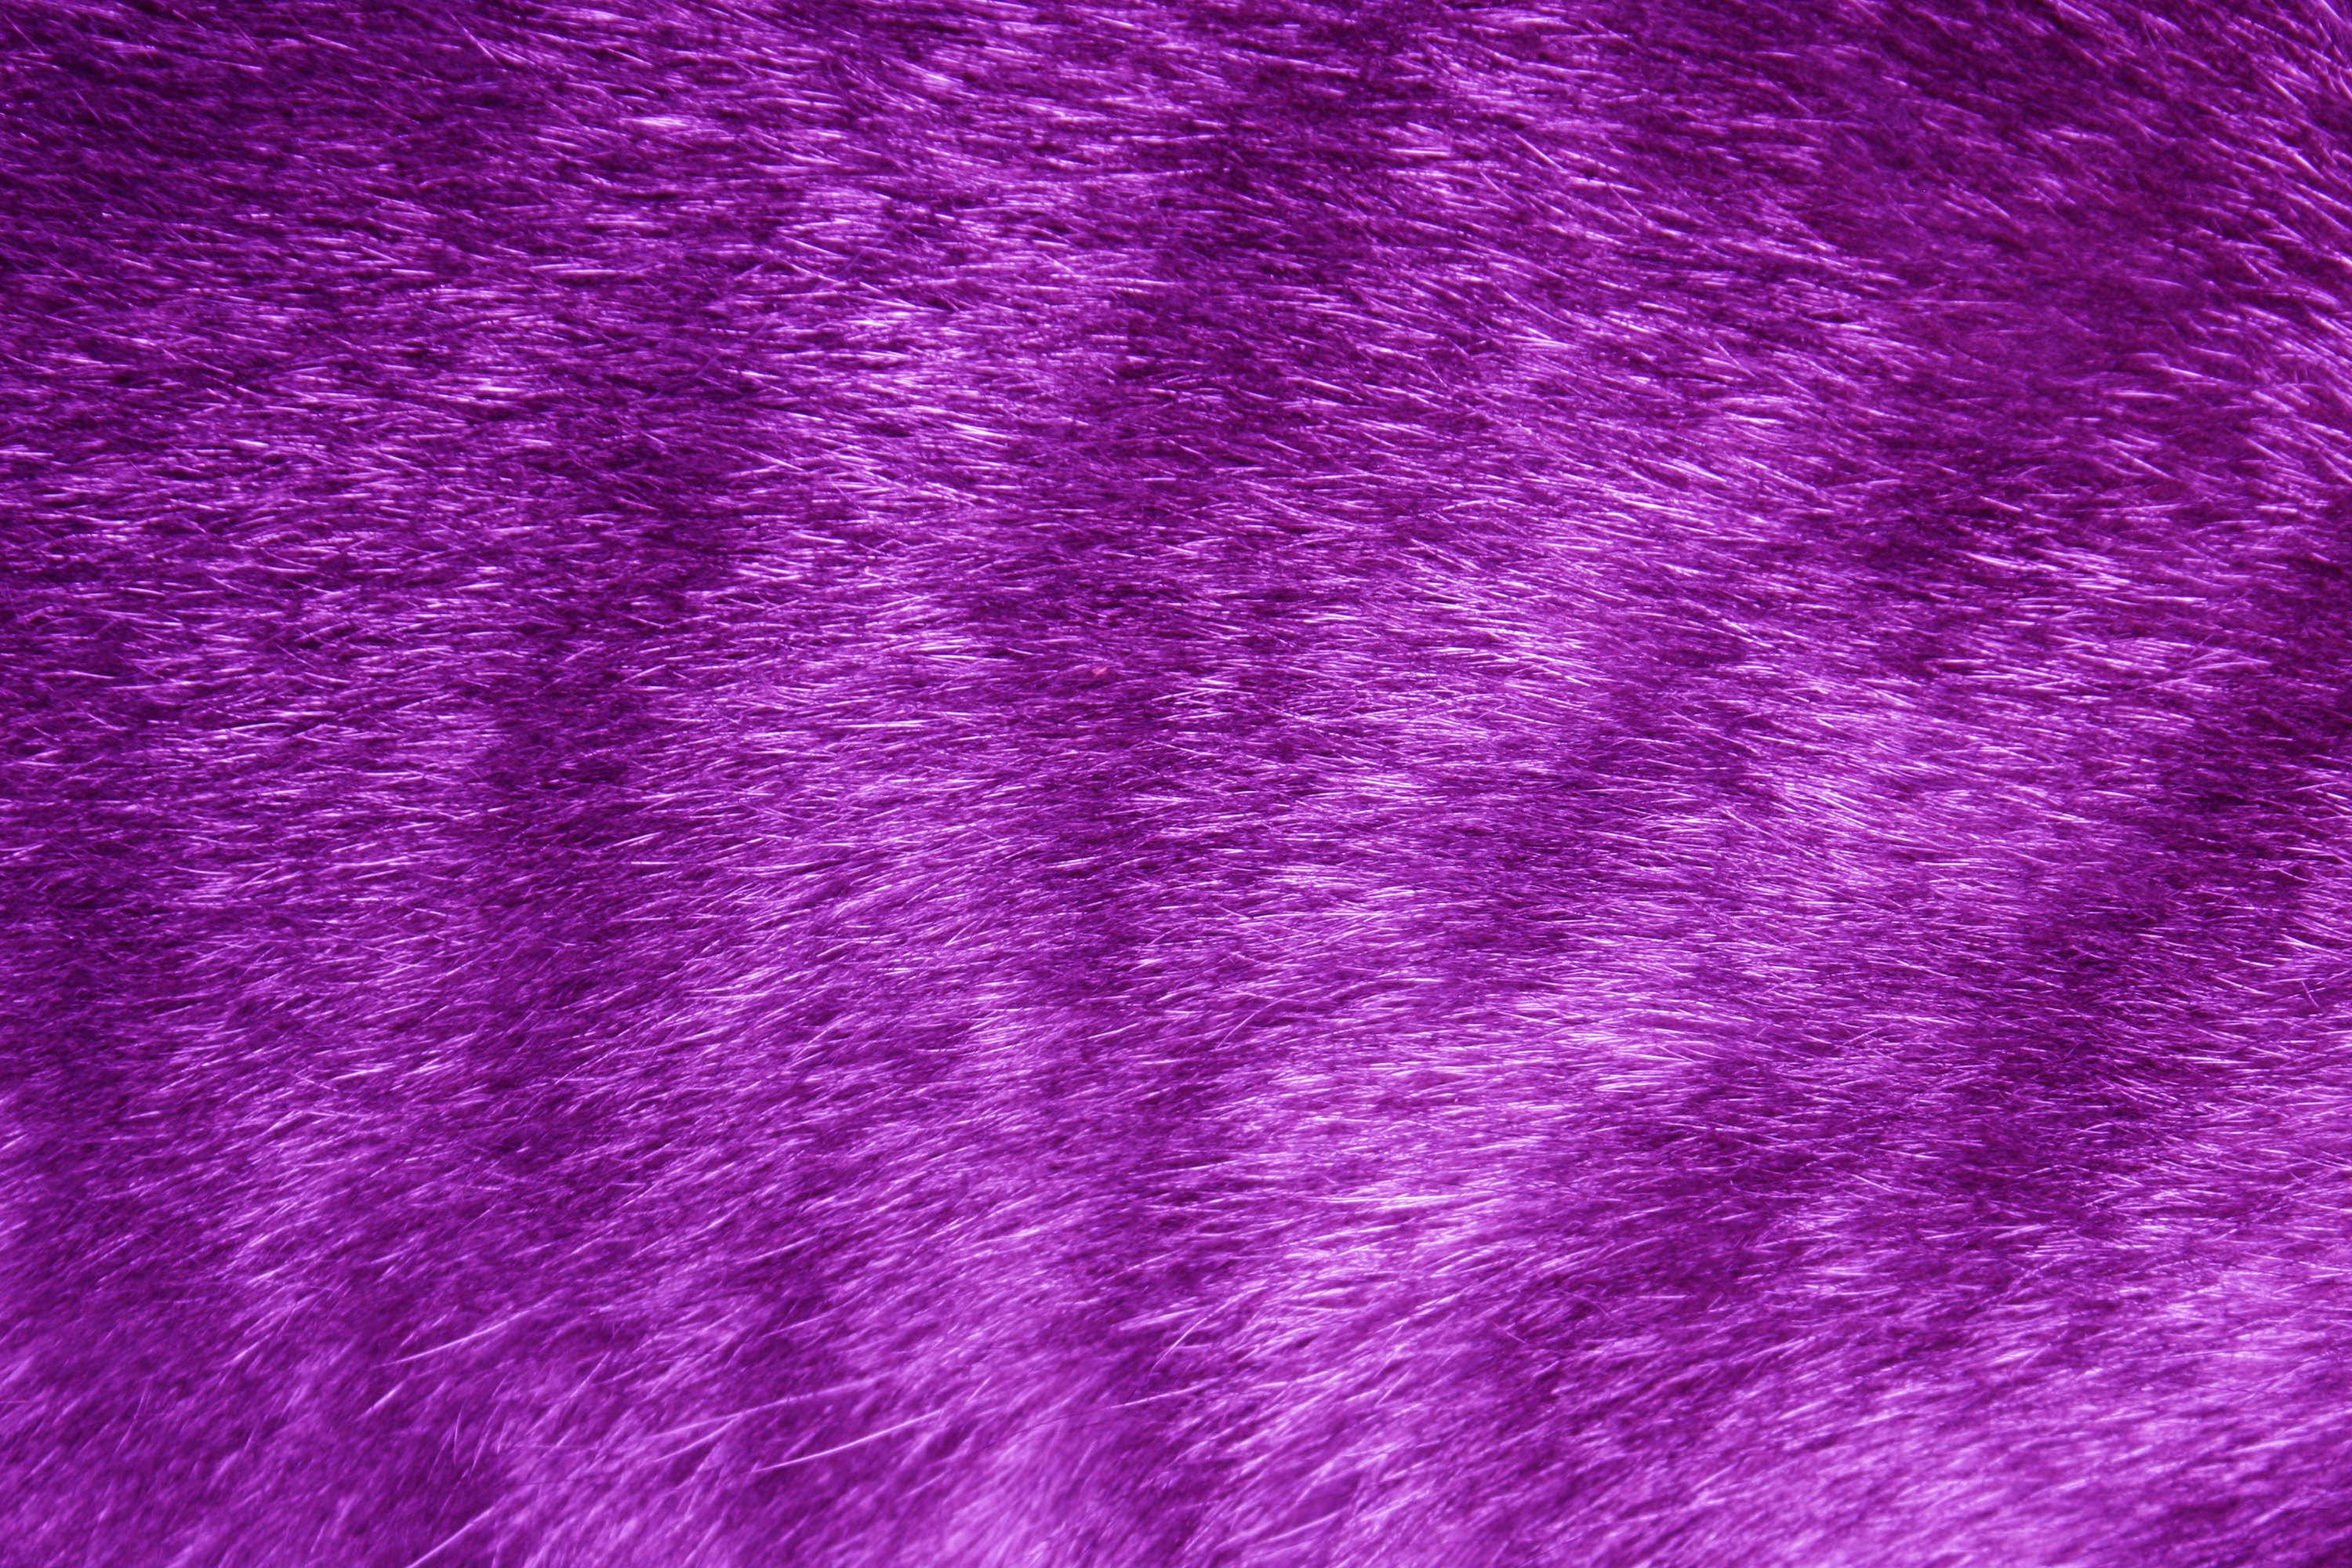 Purple Tabby Fur Texture Picture Free Photograph